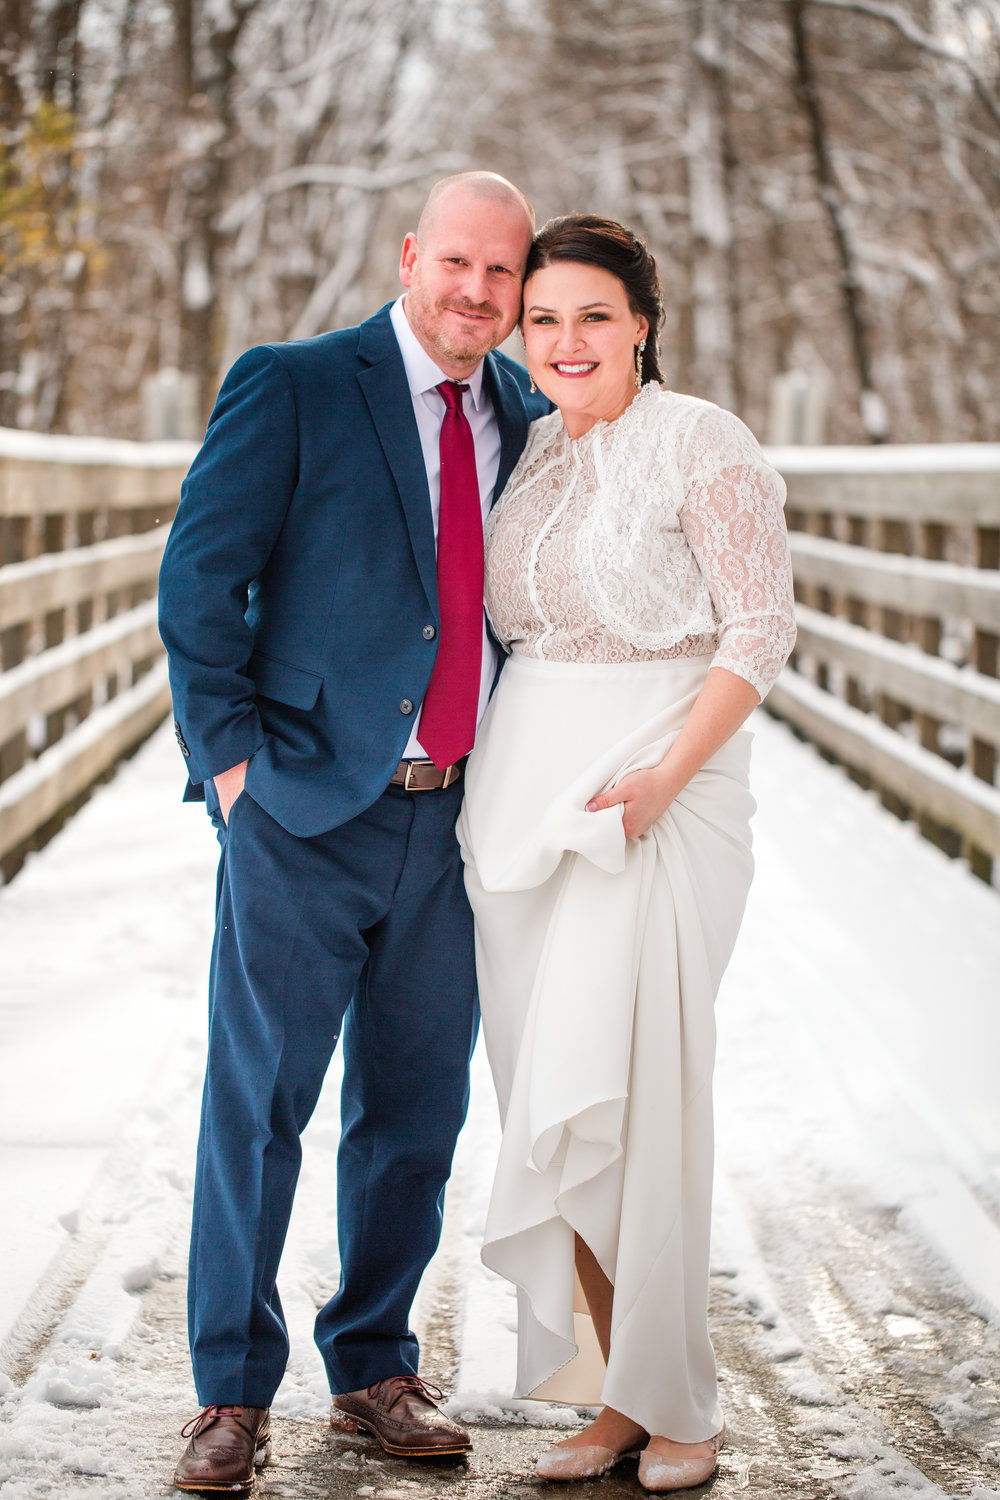 wintery wedding in Des Moines Iowa bridge first look photos Kirsten Mike